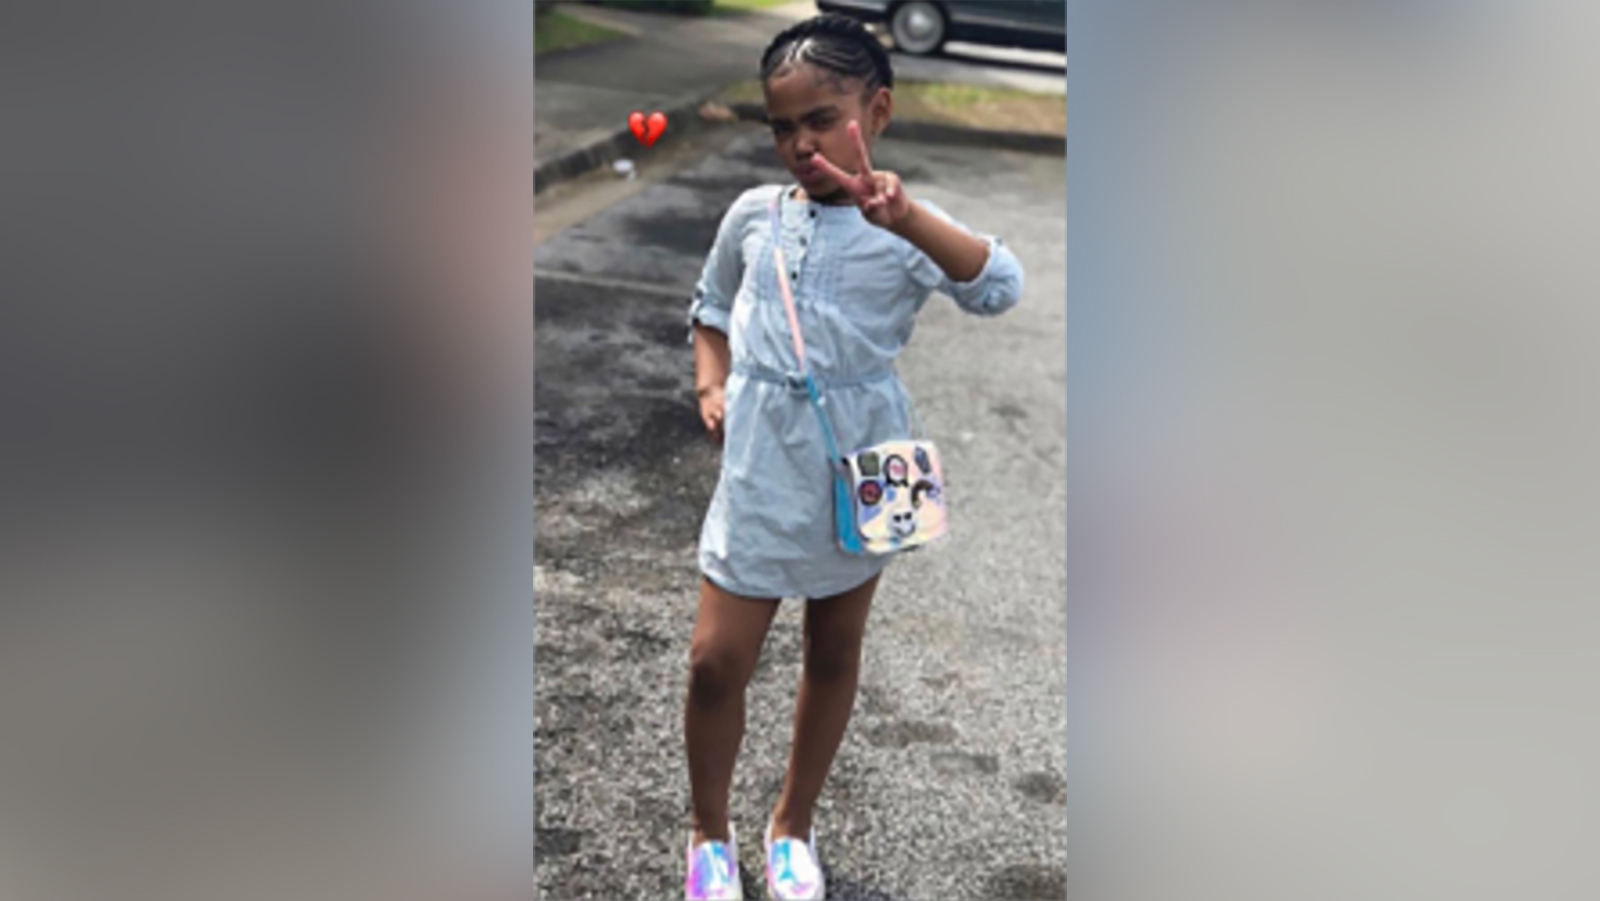 Atlanta mayor says 'enough is enough' after girl fatally shot near scene of Rayshard Brooks' death